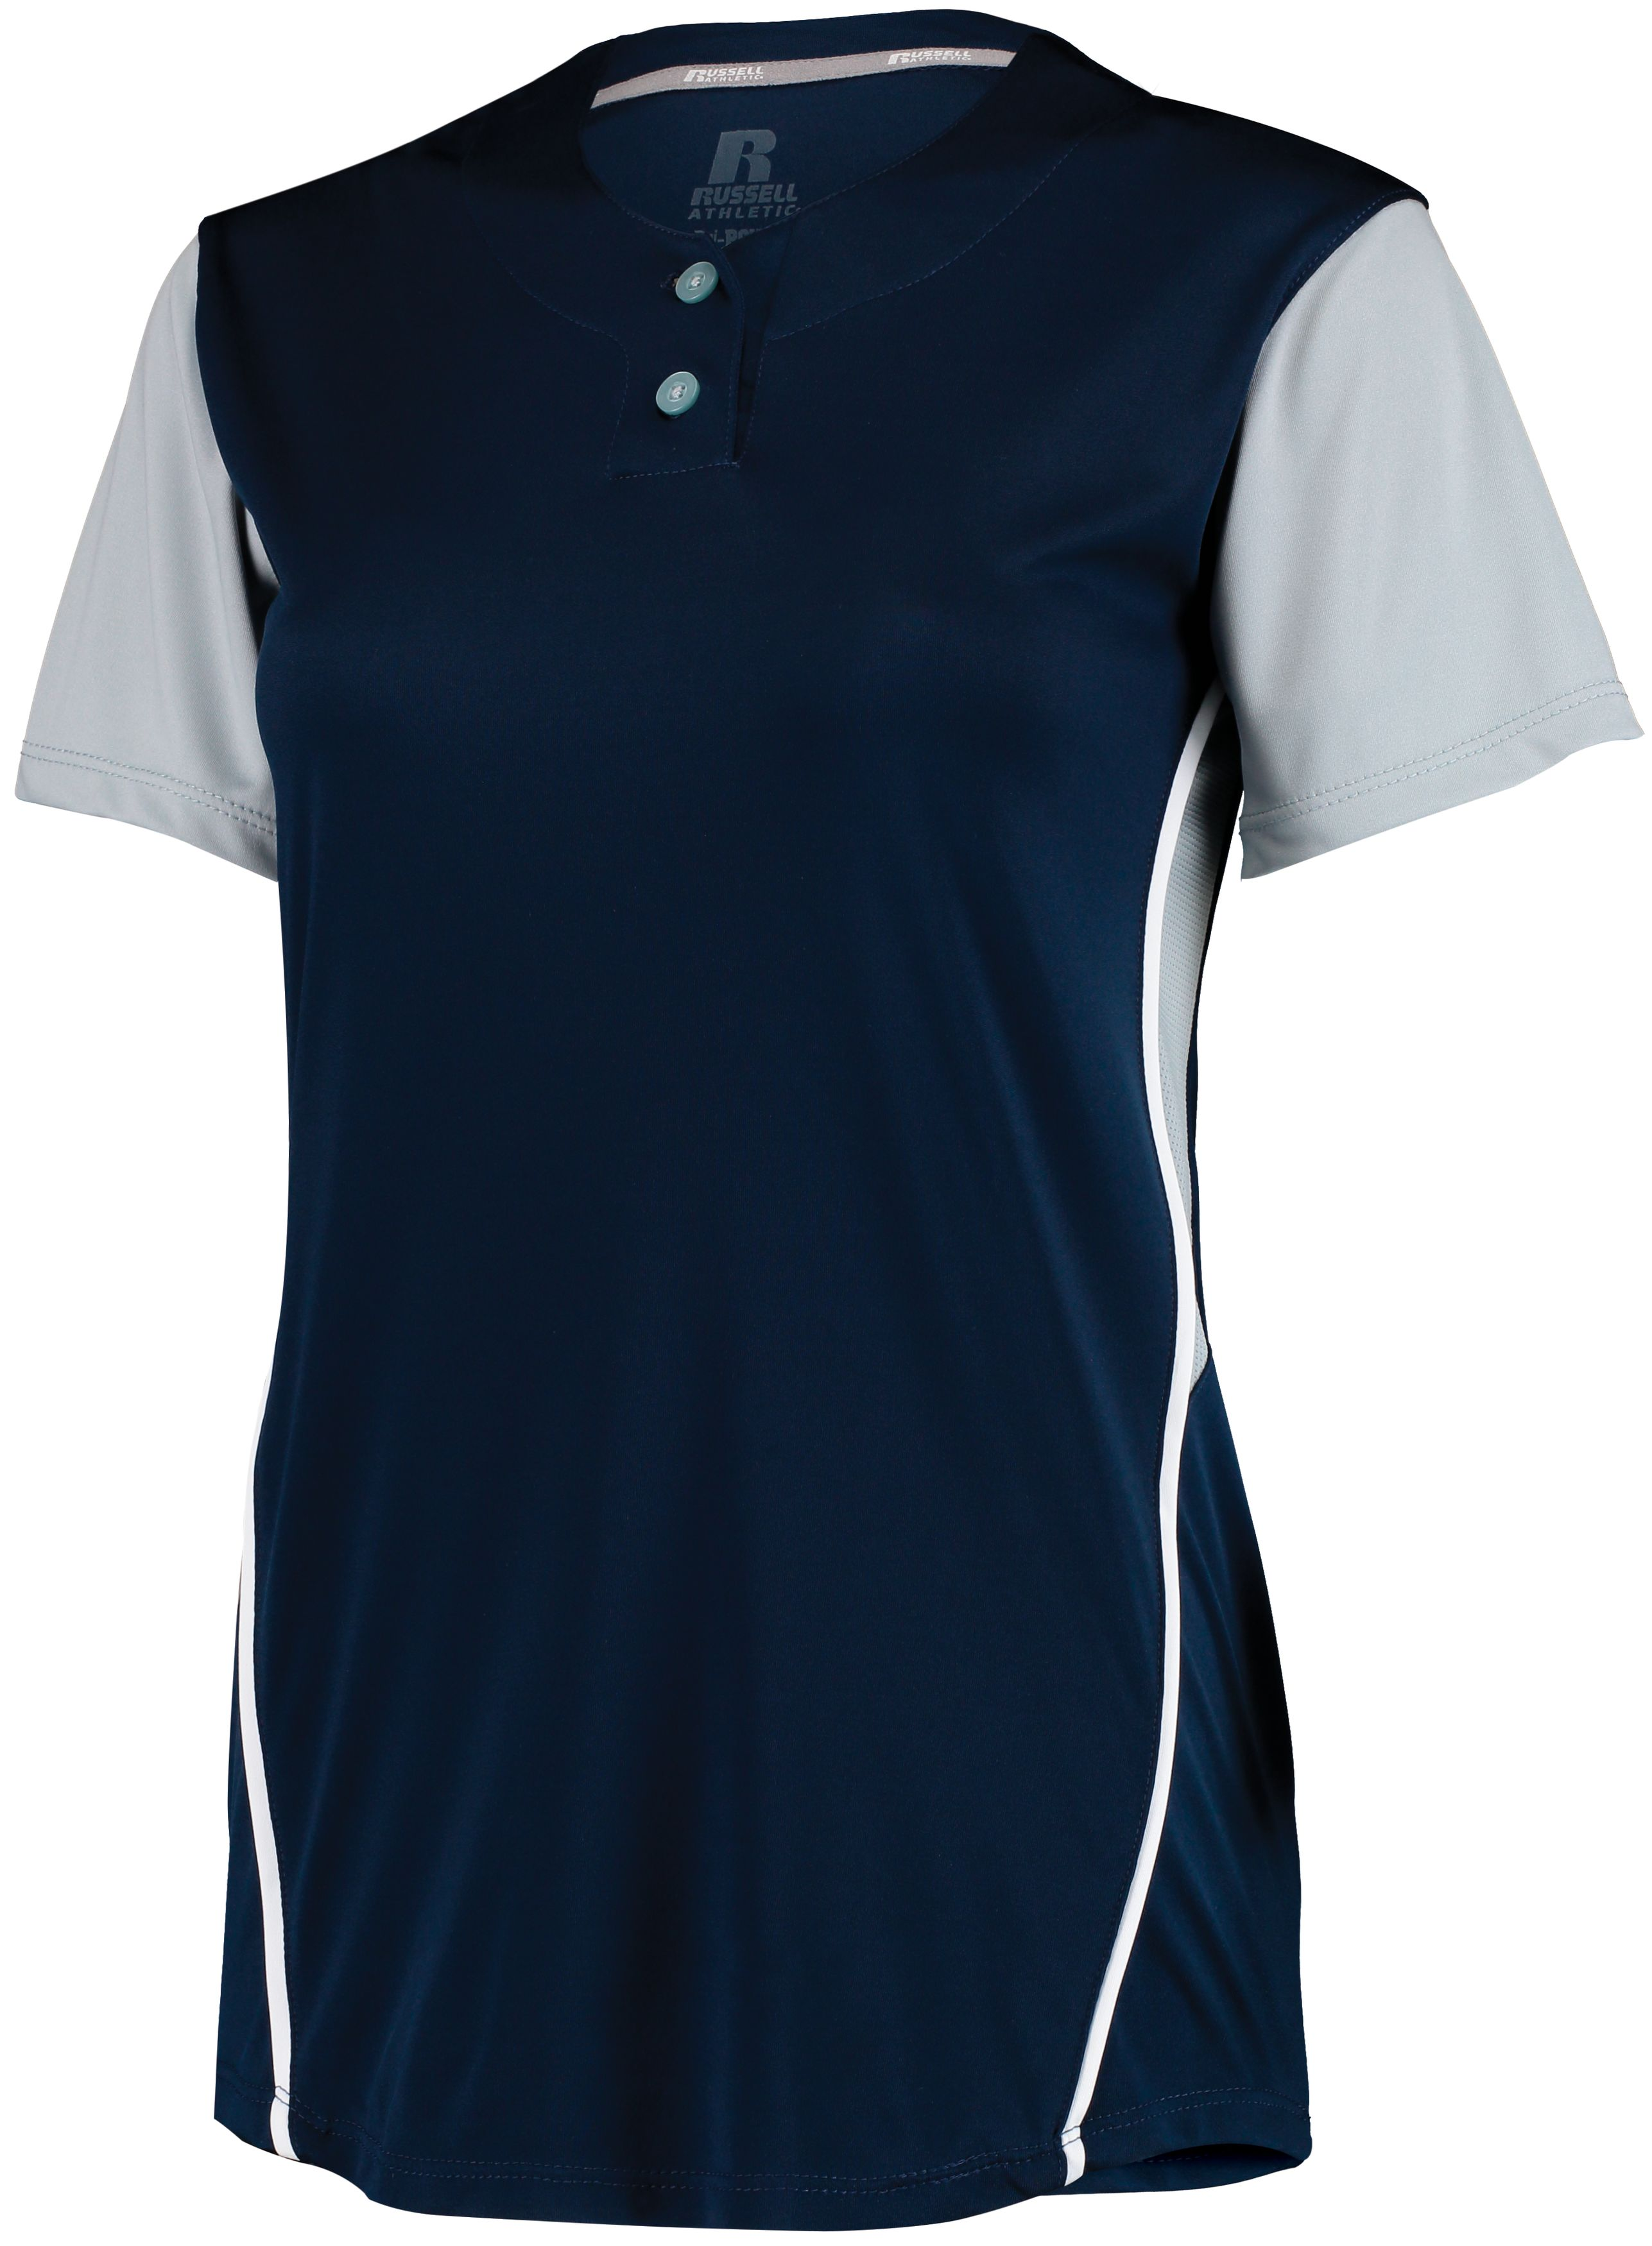 Ladies Performance Two-Button Color Block Jersey - Navy/baseball Grey